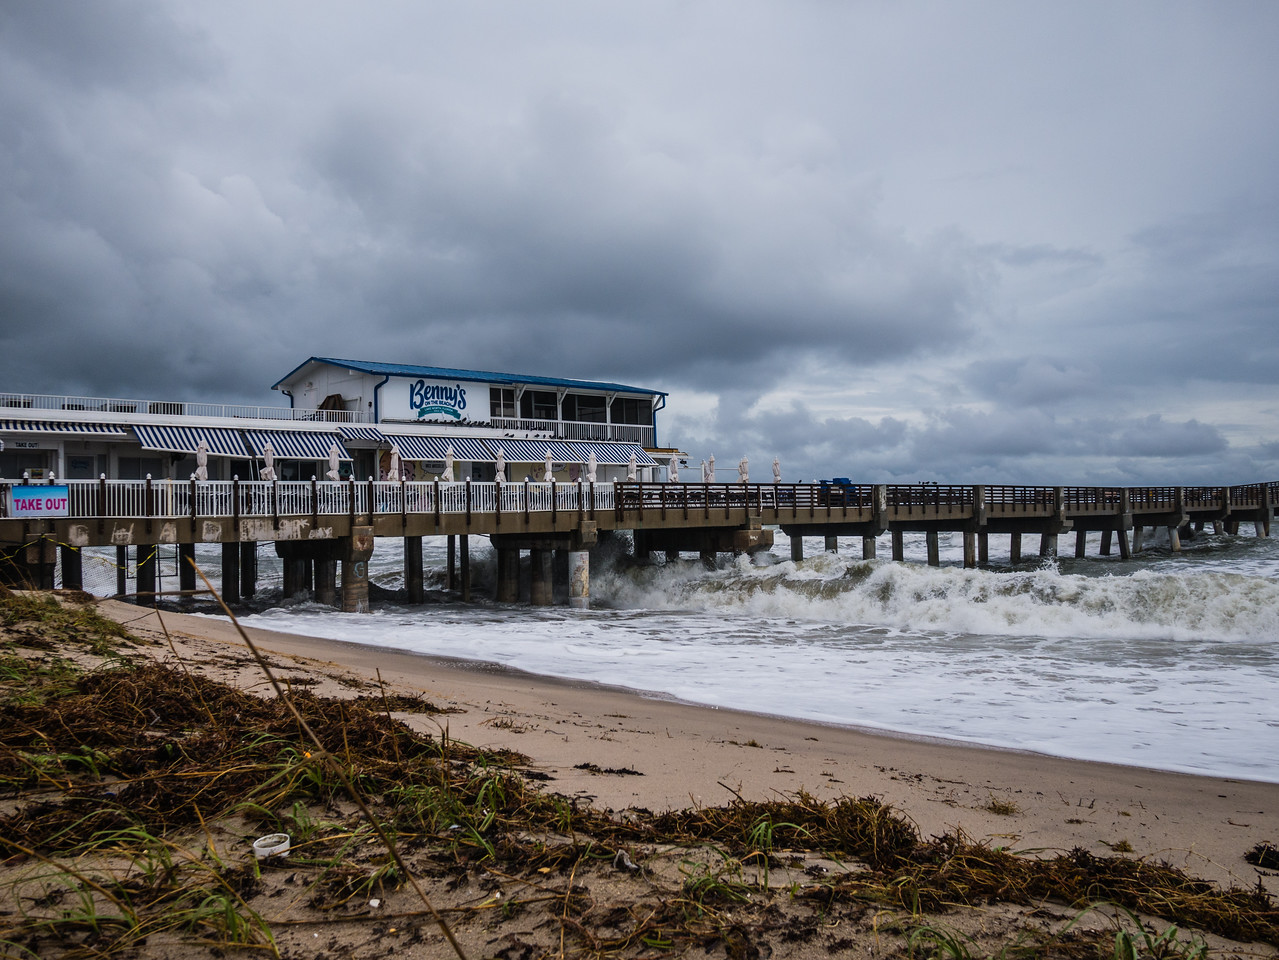 Heavy seas roar into the Lake Worth Pier in Lake Worth on Thursday, October 5, 2017. Palm Beach County will experience gusty winds and rain for the next several days from a tropical wave, which should clear the area Friday but leave trailing showers in its wake. (Joseph Forzano / The Palm Beach Post)